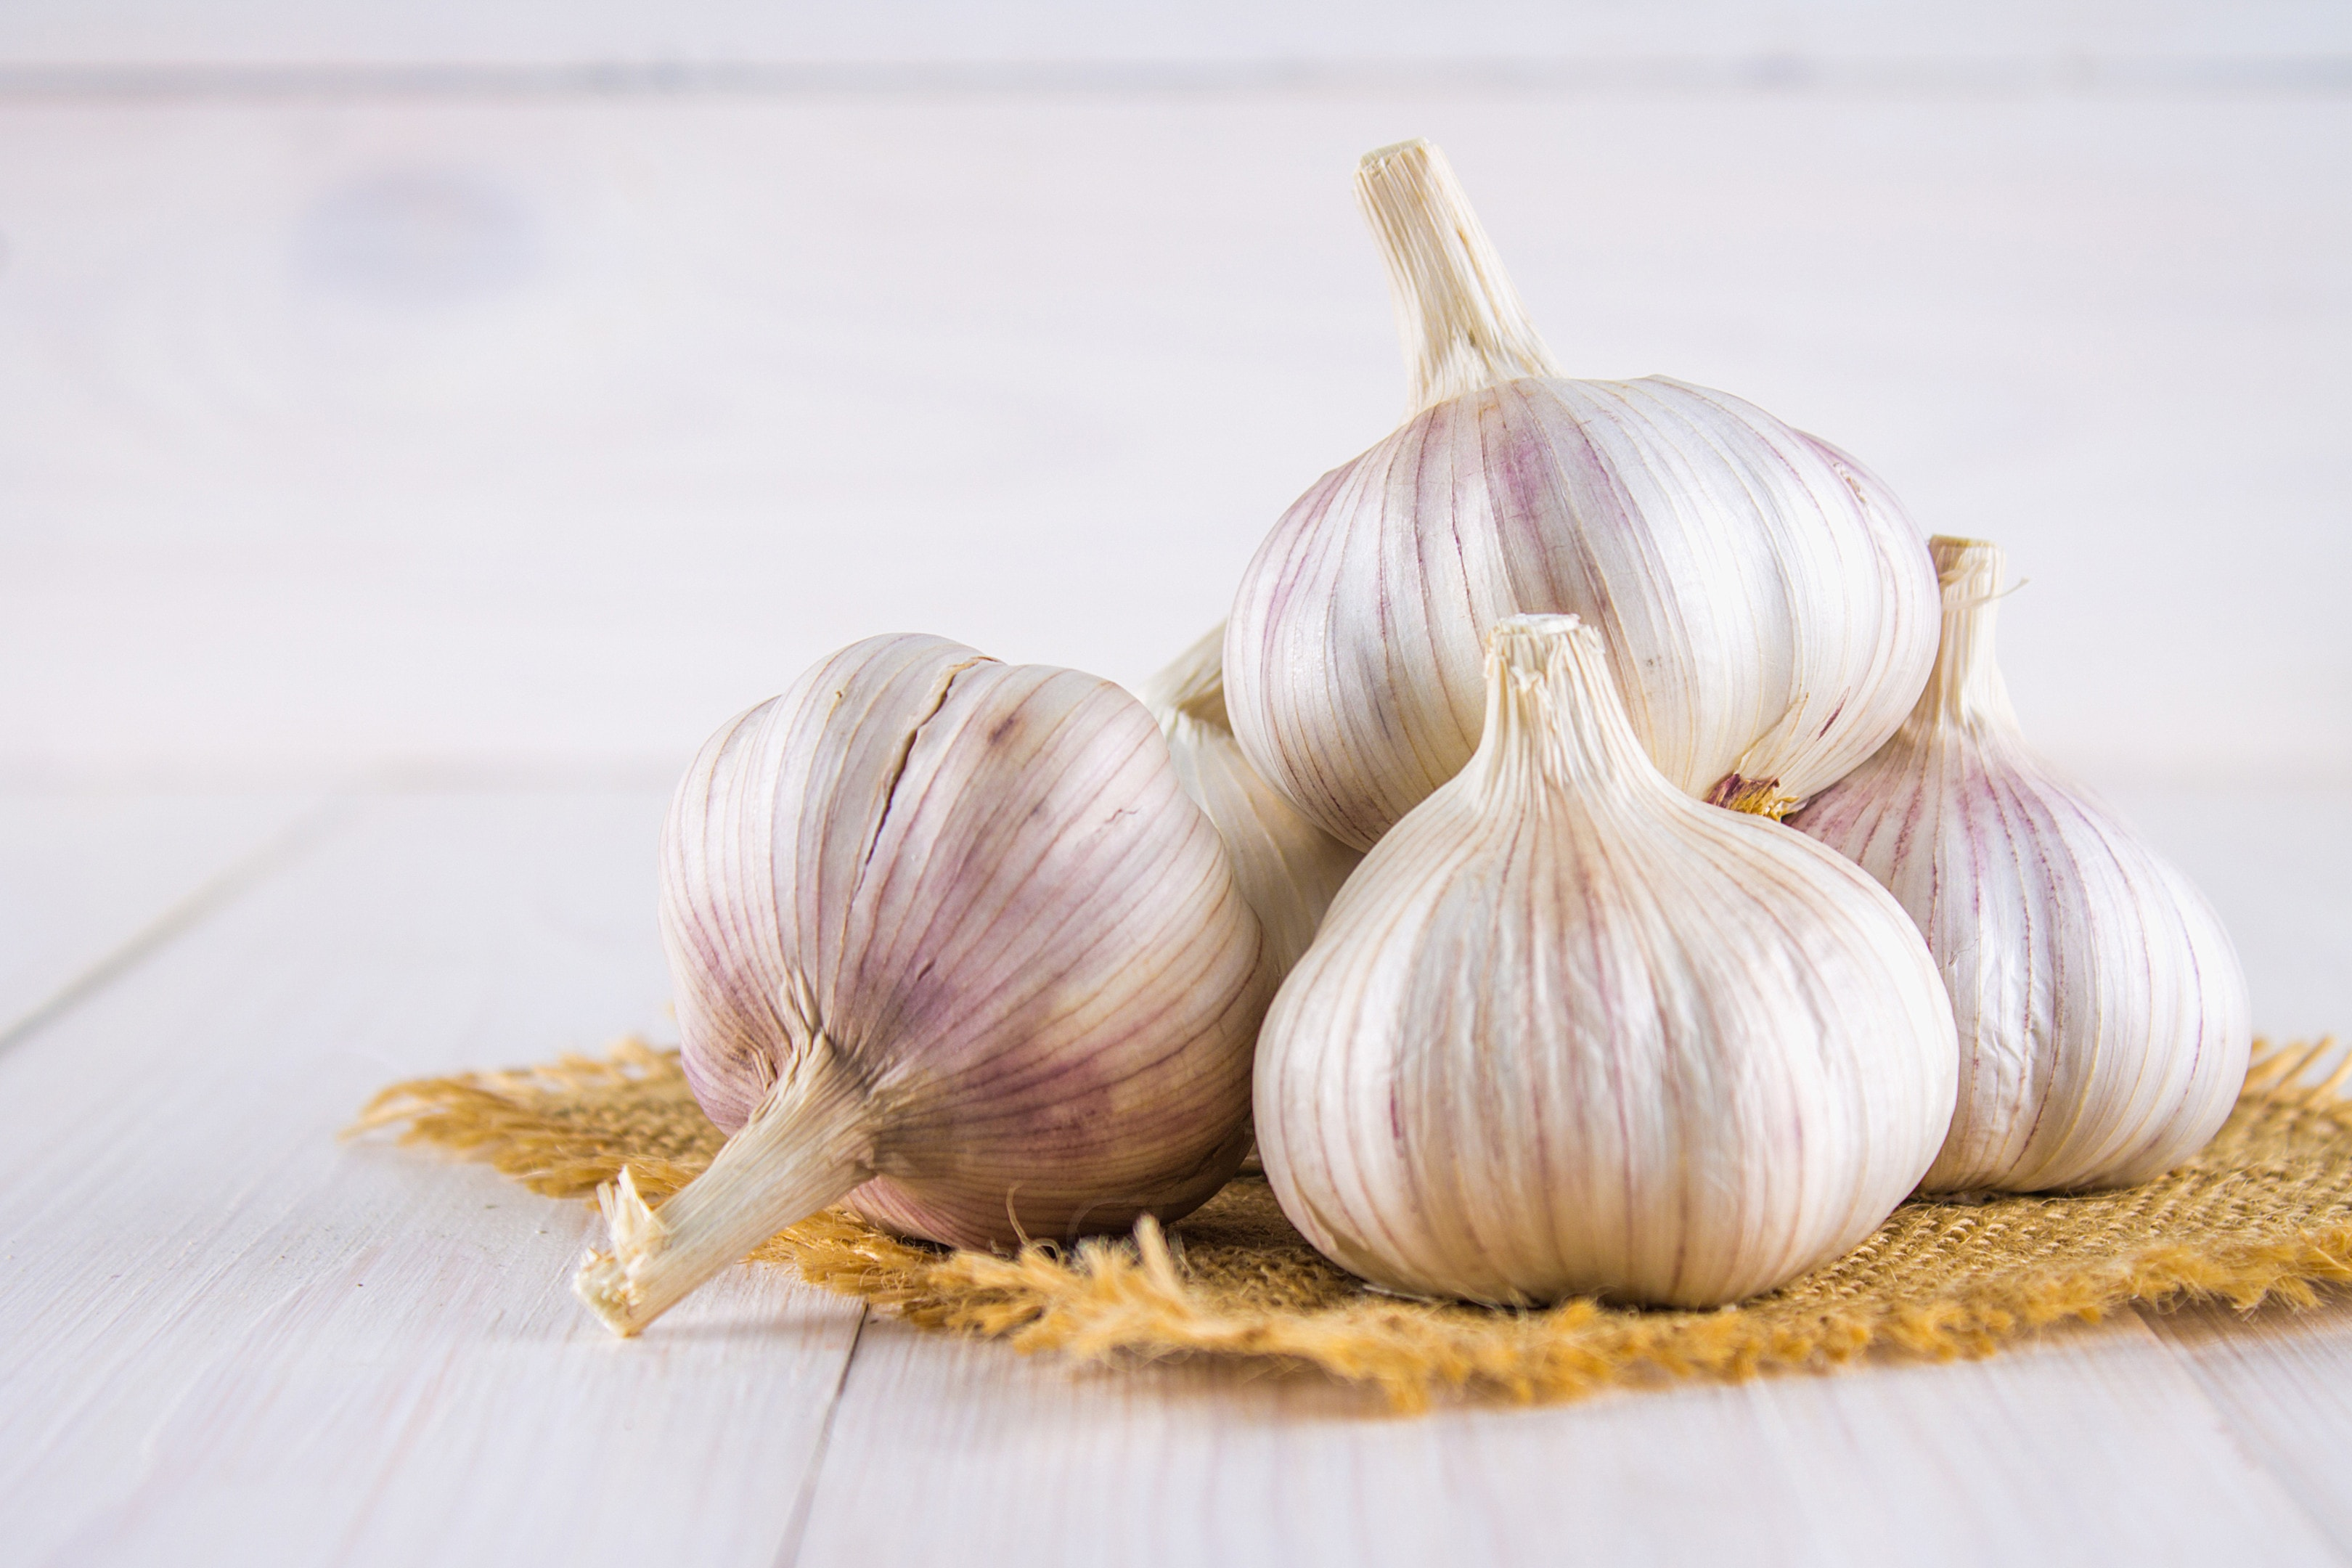 Garlic cloves on white wooden table